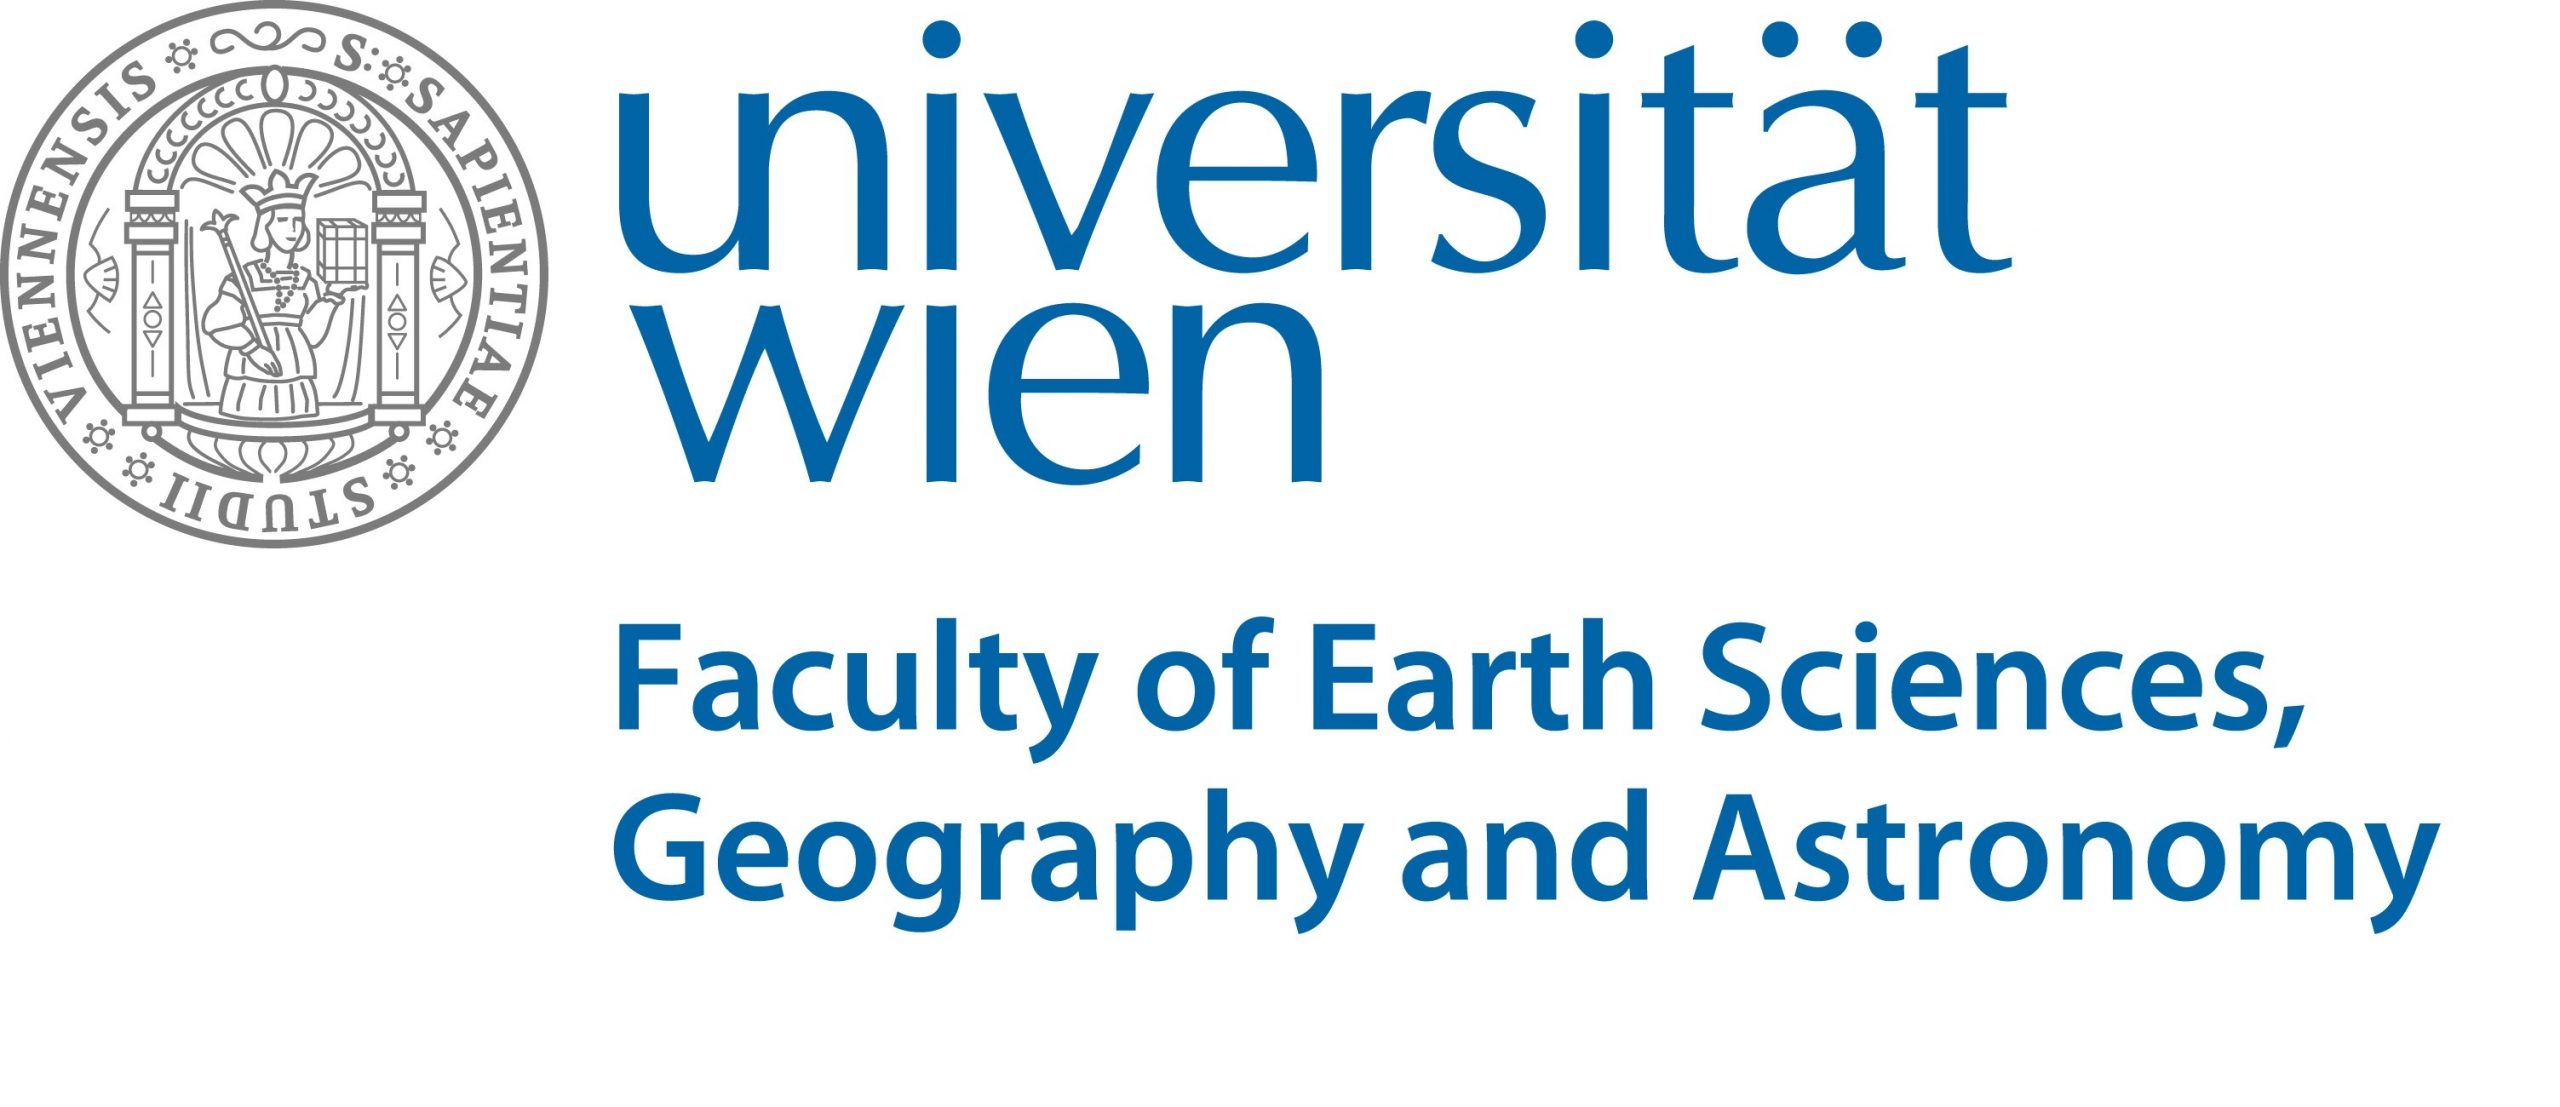 Faculty of Earth Sciences, Geography and Astronomy